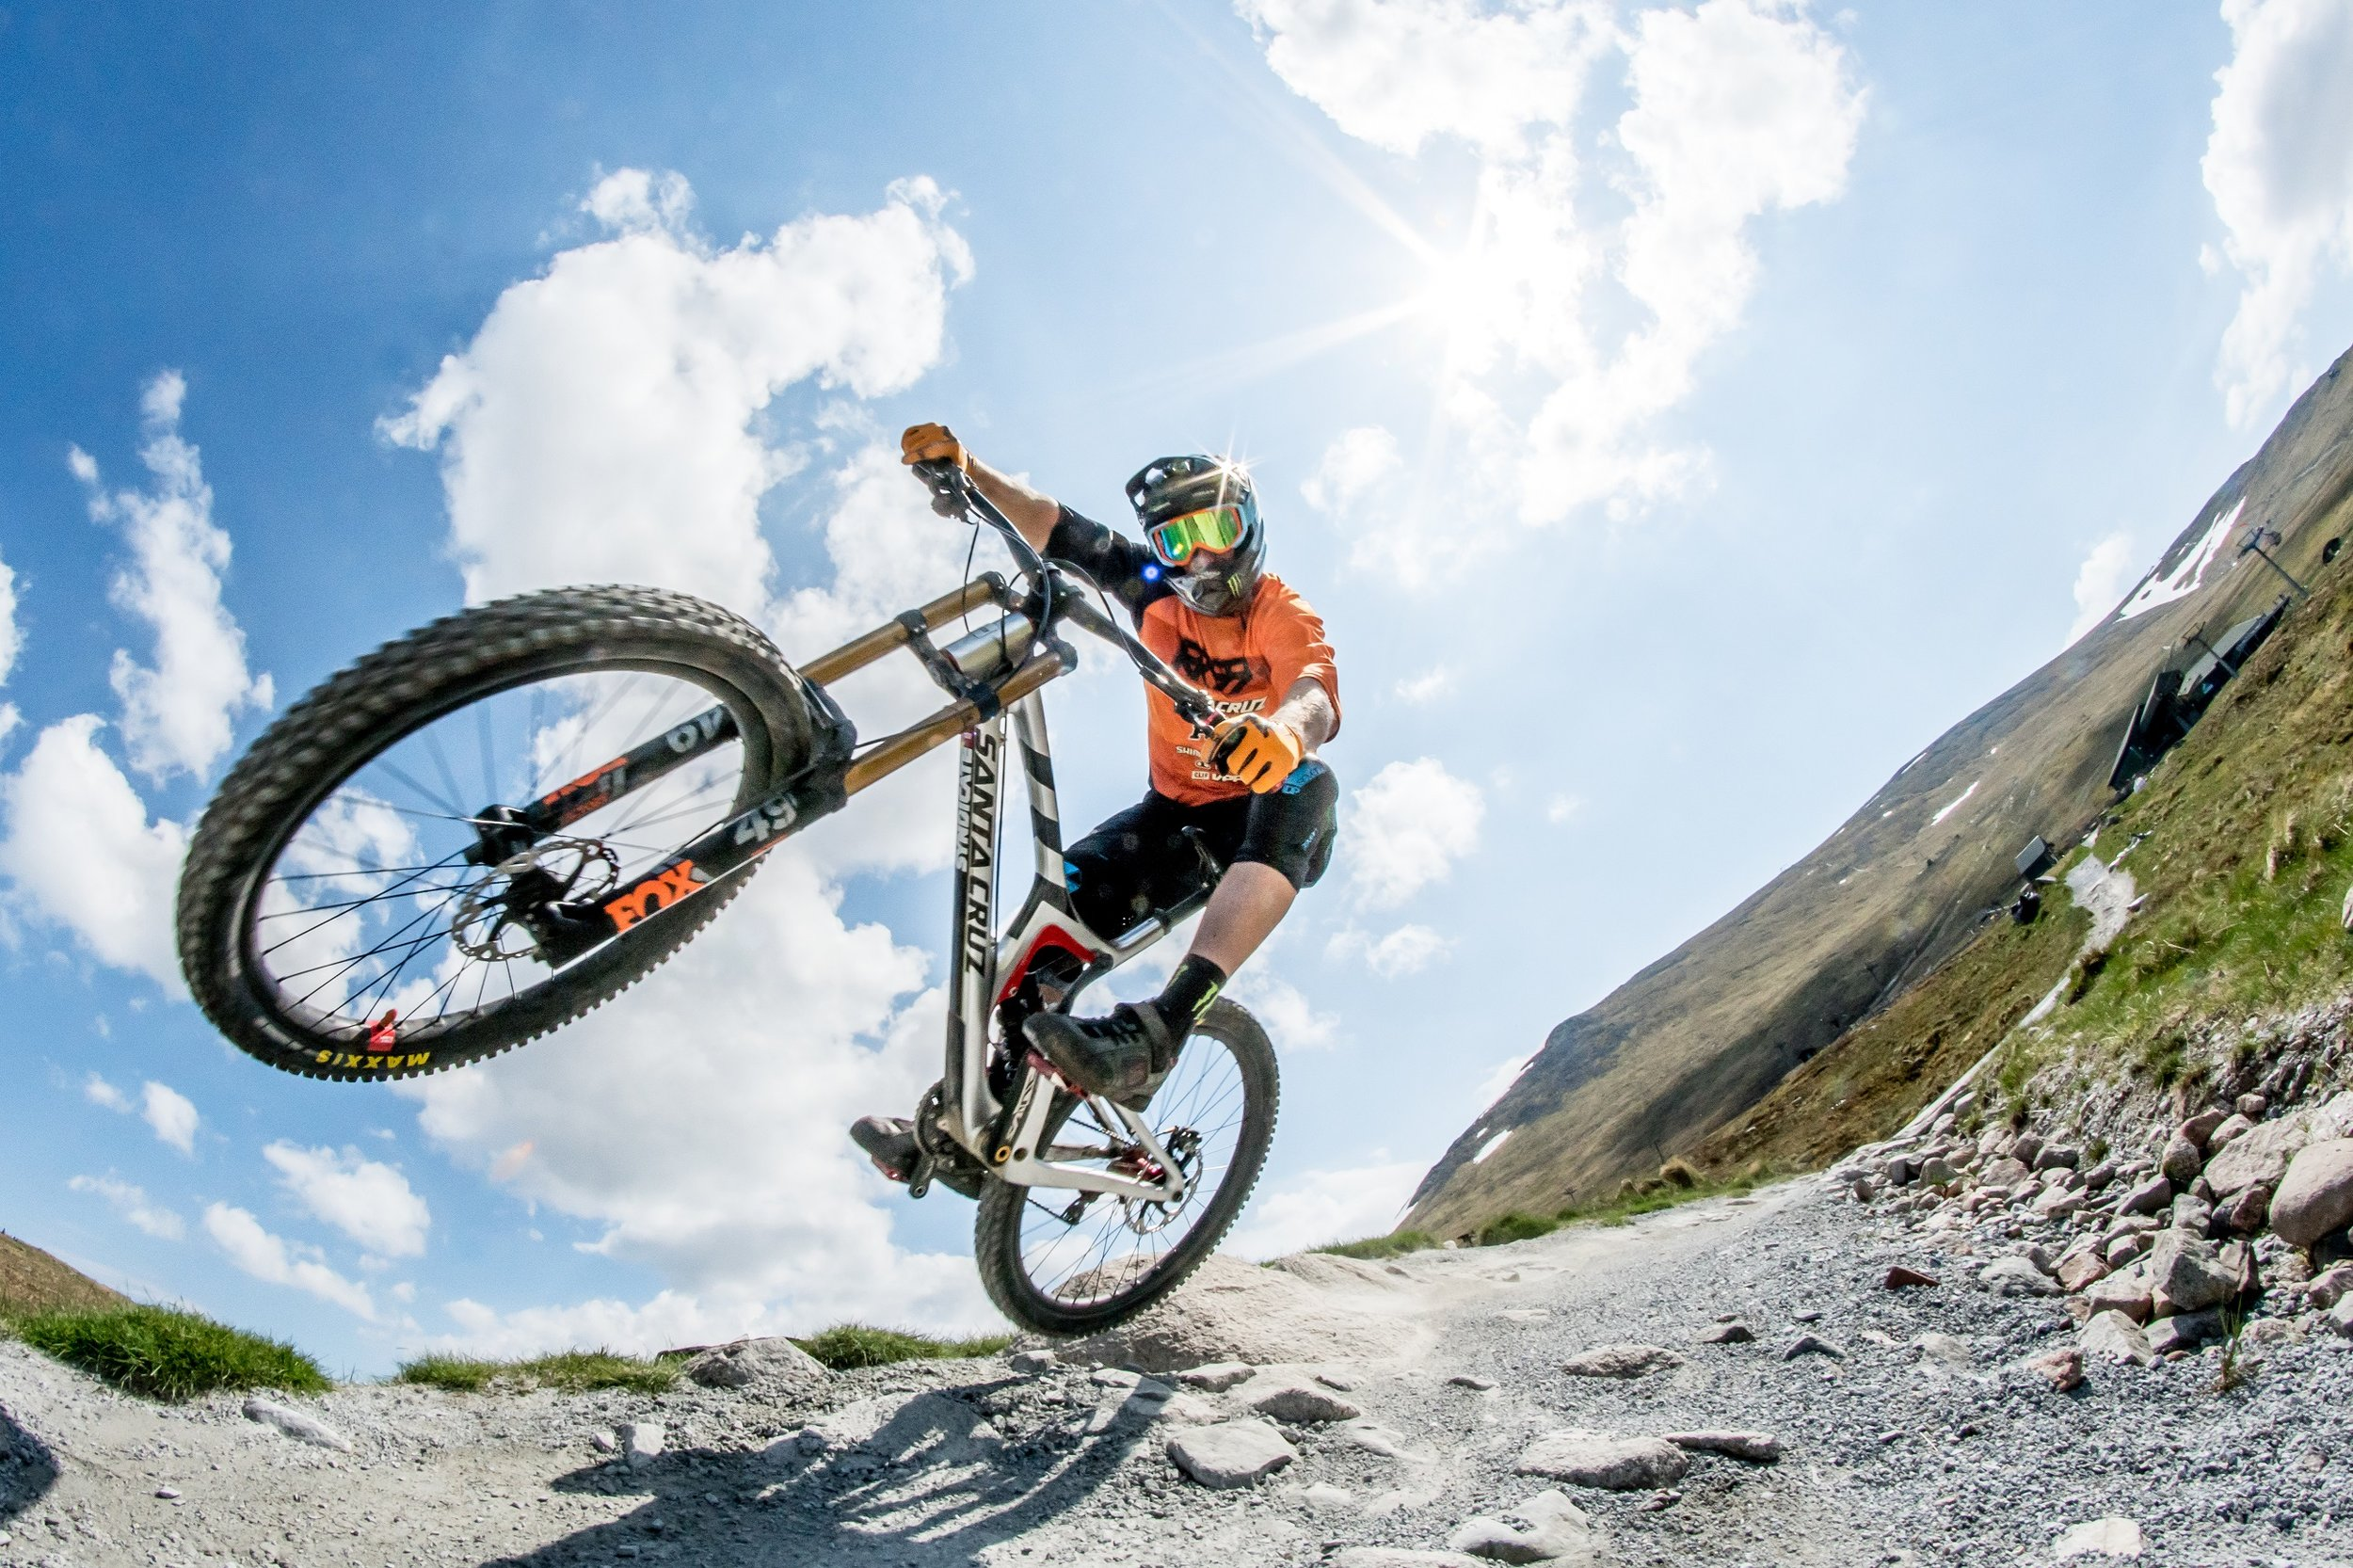 Steve Peat / Photo Credit: Brodie Hood Photography